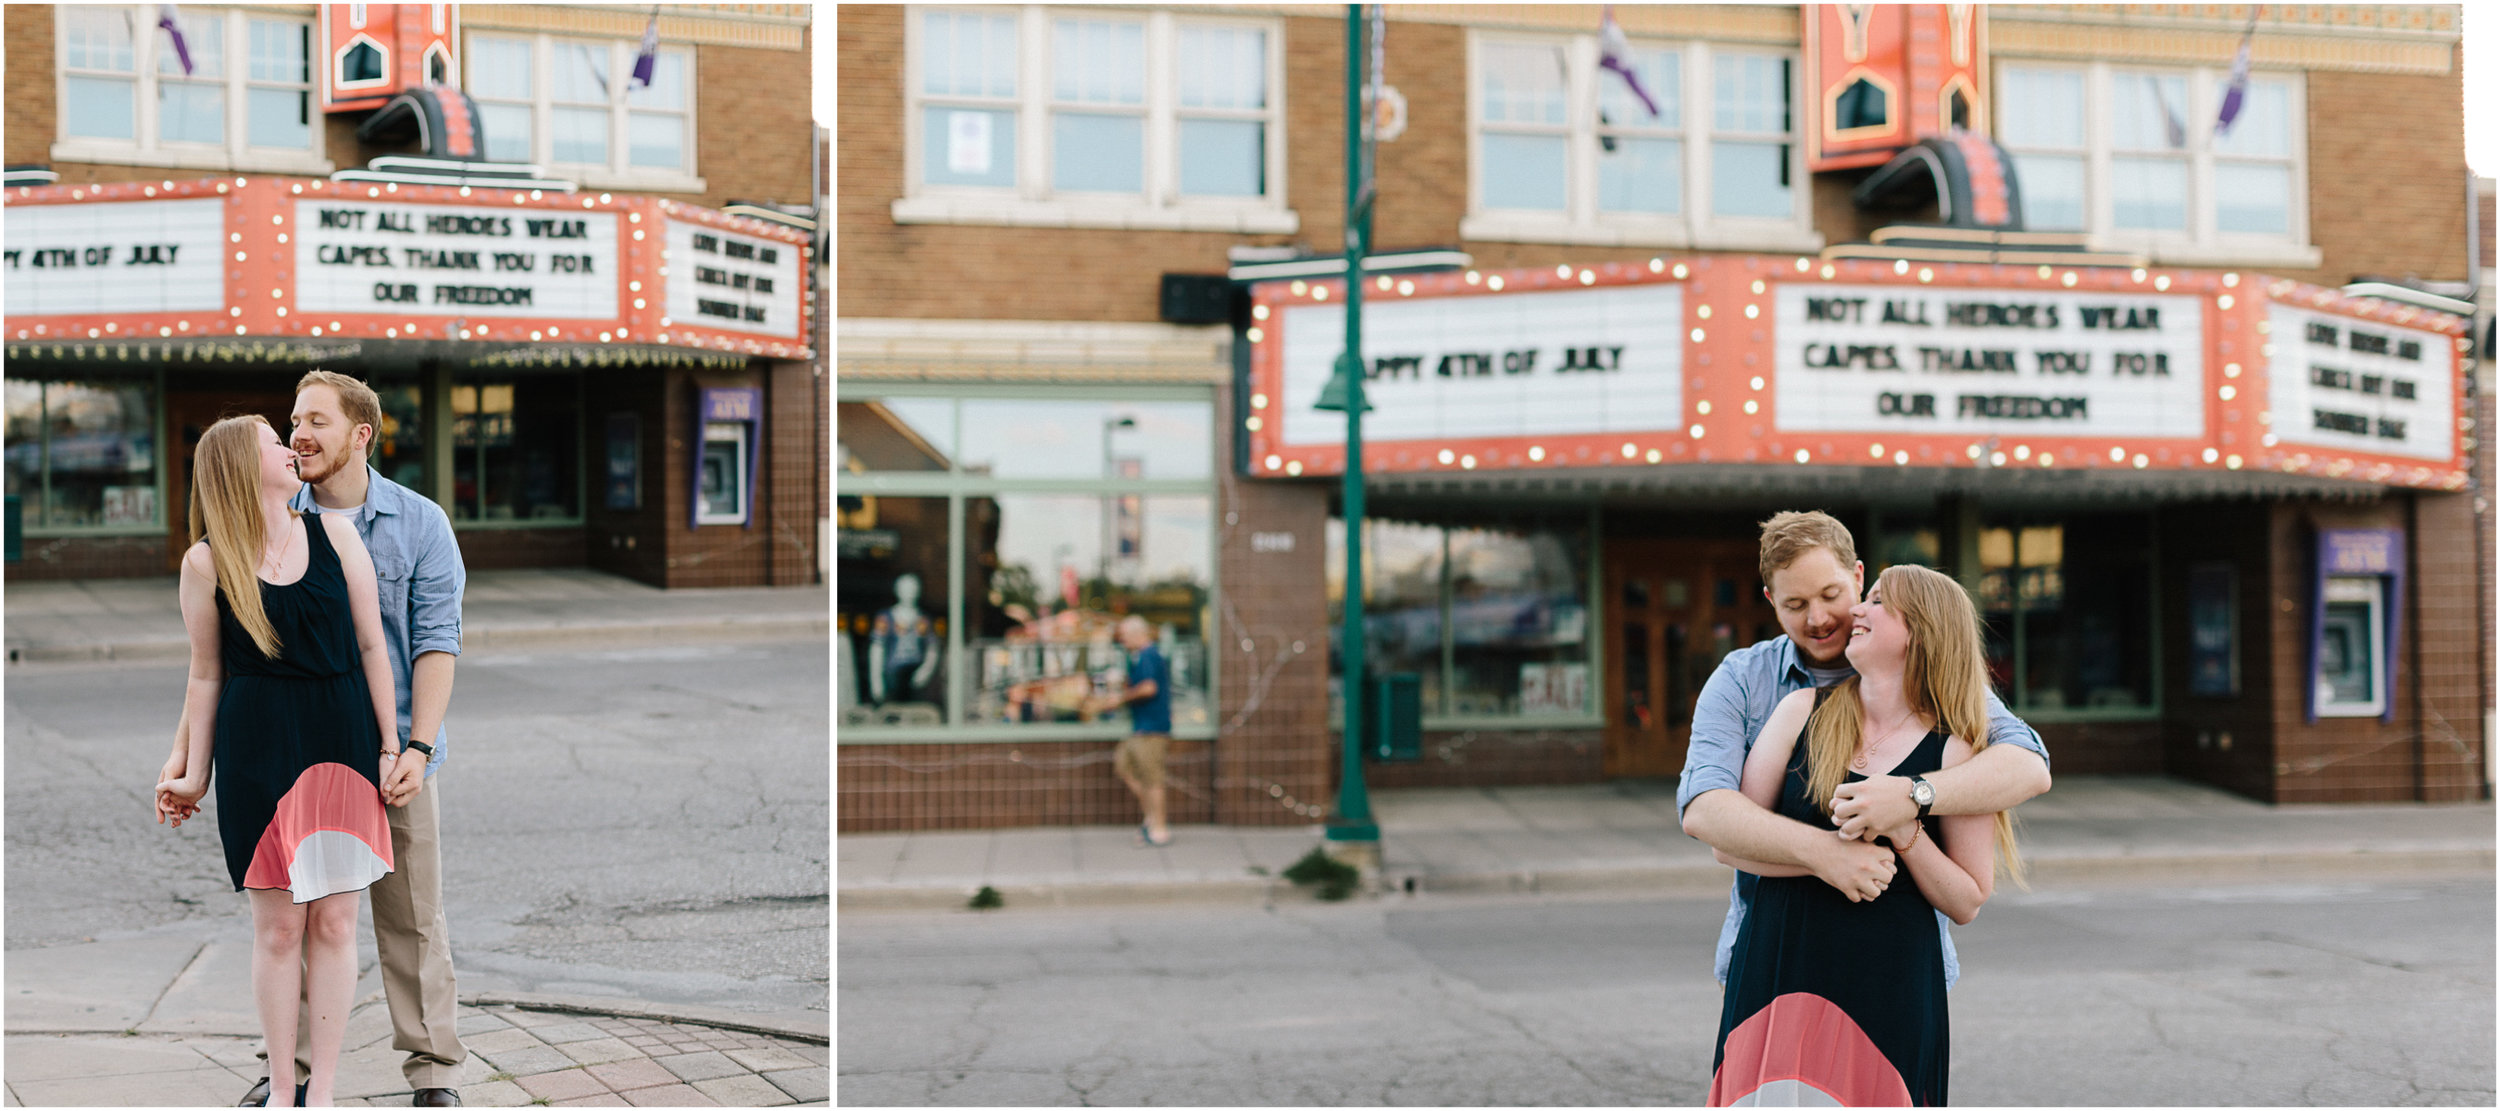 alyssa barletter photography manhattan kansas engagement photos aggieville kaitlynn and jon-8.jpg